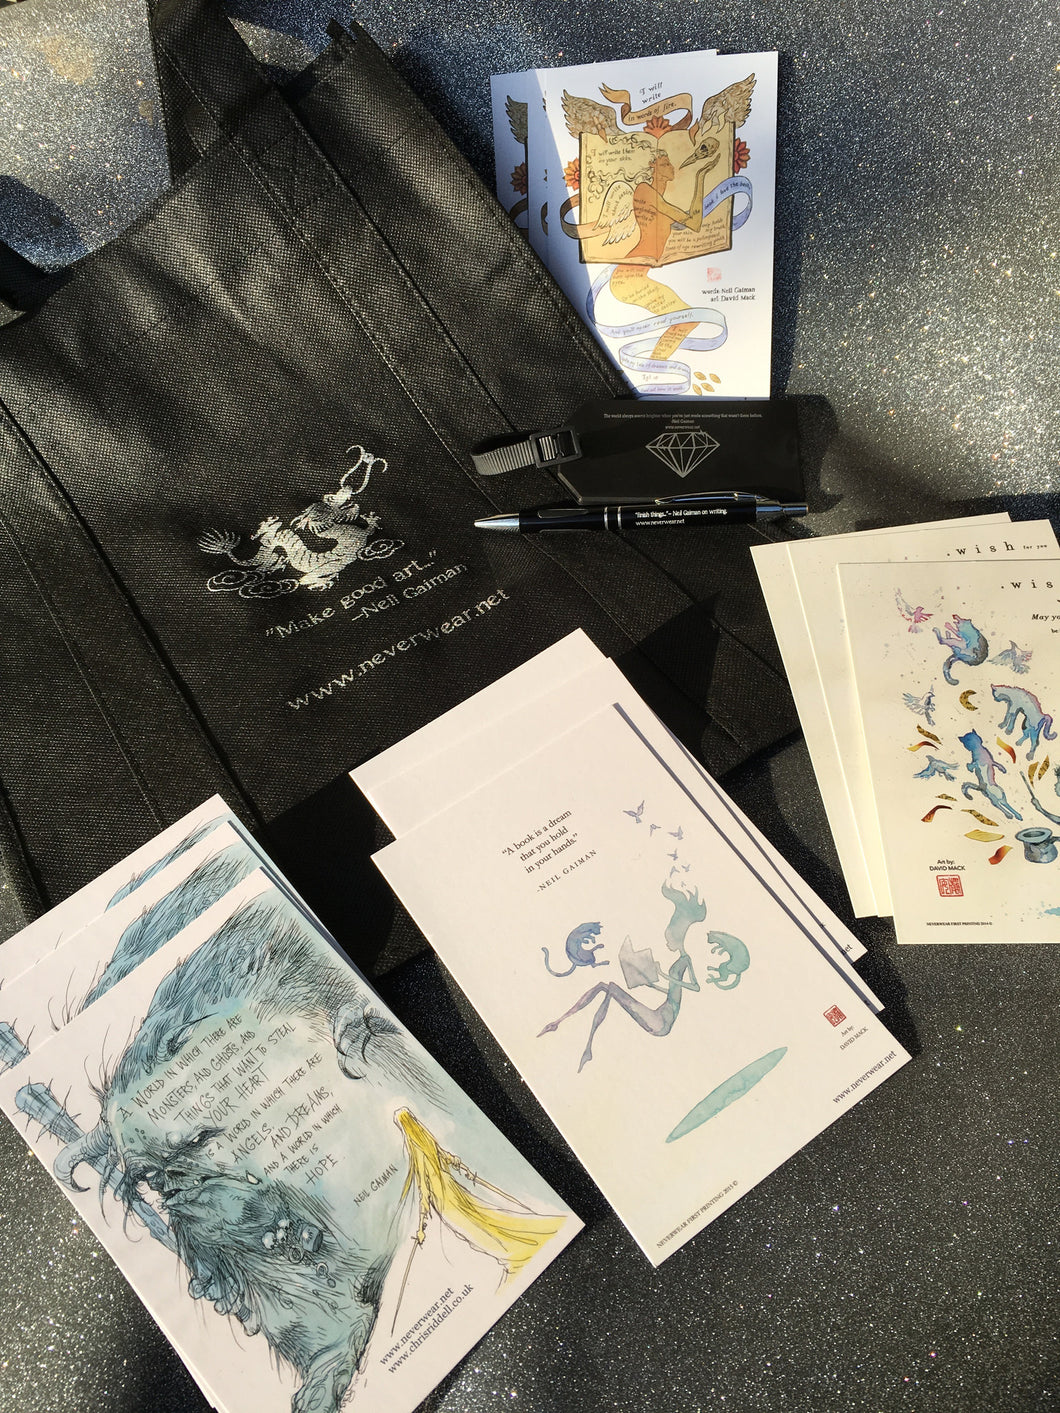 SOLD OUT!! Writer's Kit #4 (plus another chance to win signed-by-Neil bag!)